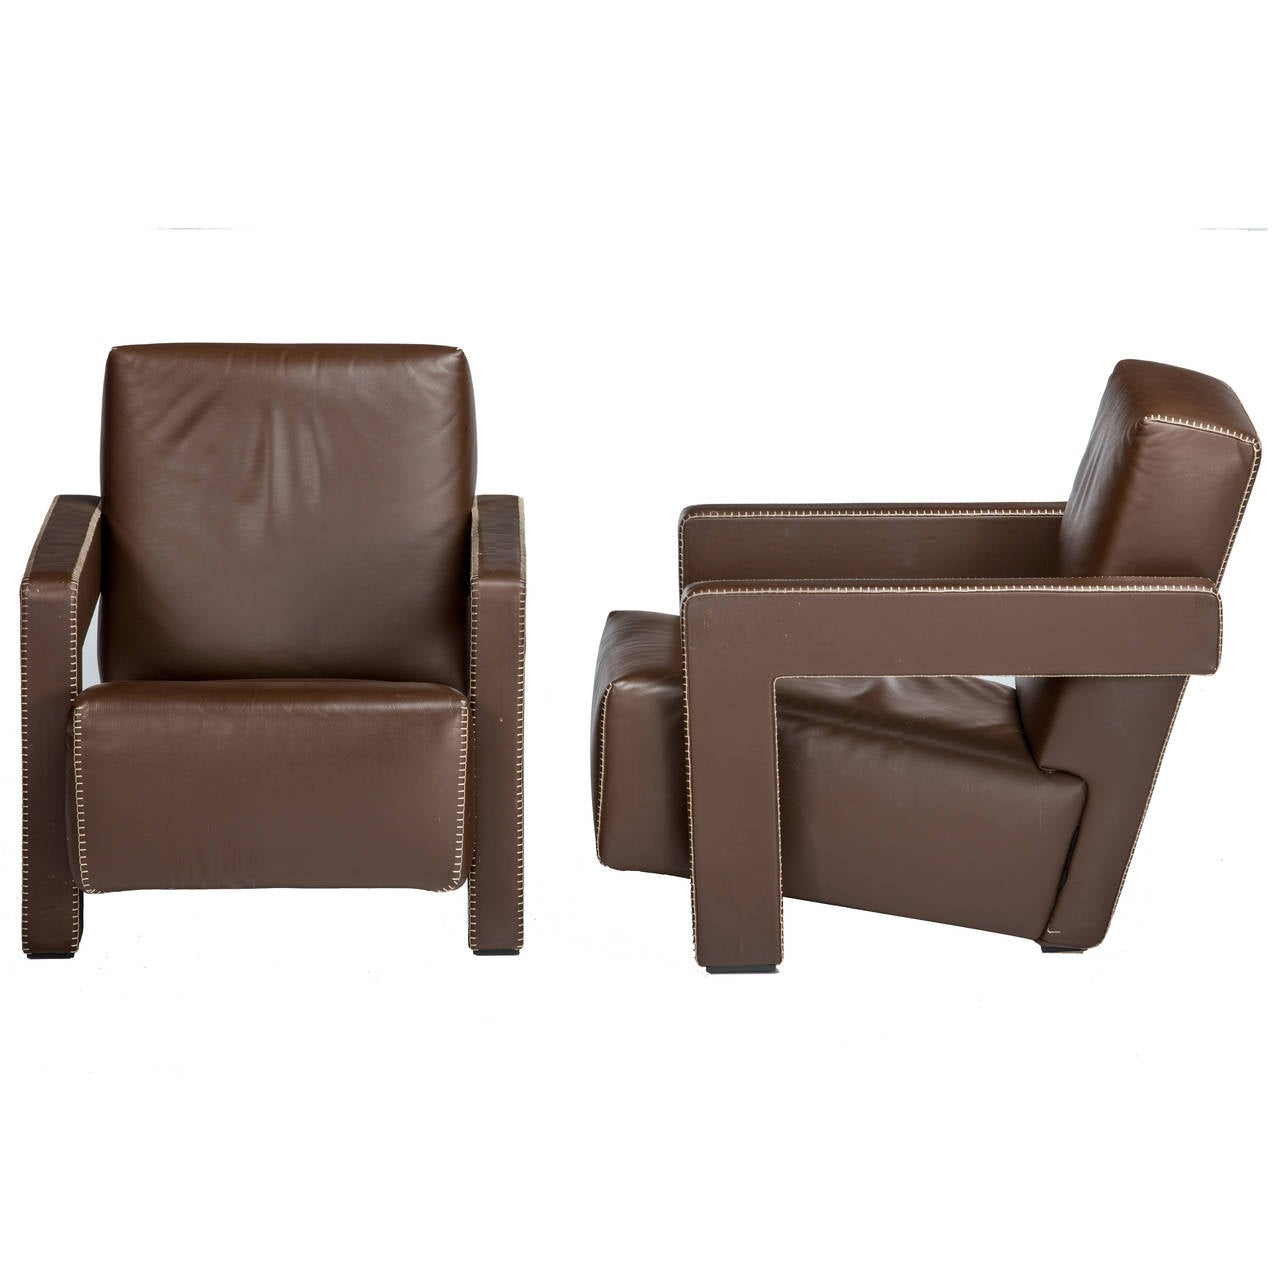 """Pair of Brown Leather Gerrit Rietveld """"Utrecht"""" Chairs"""